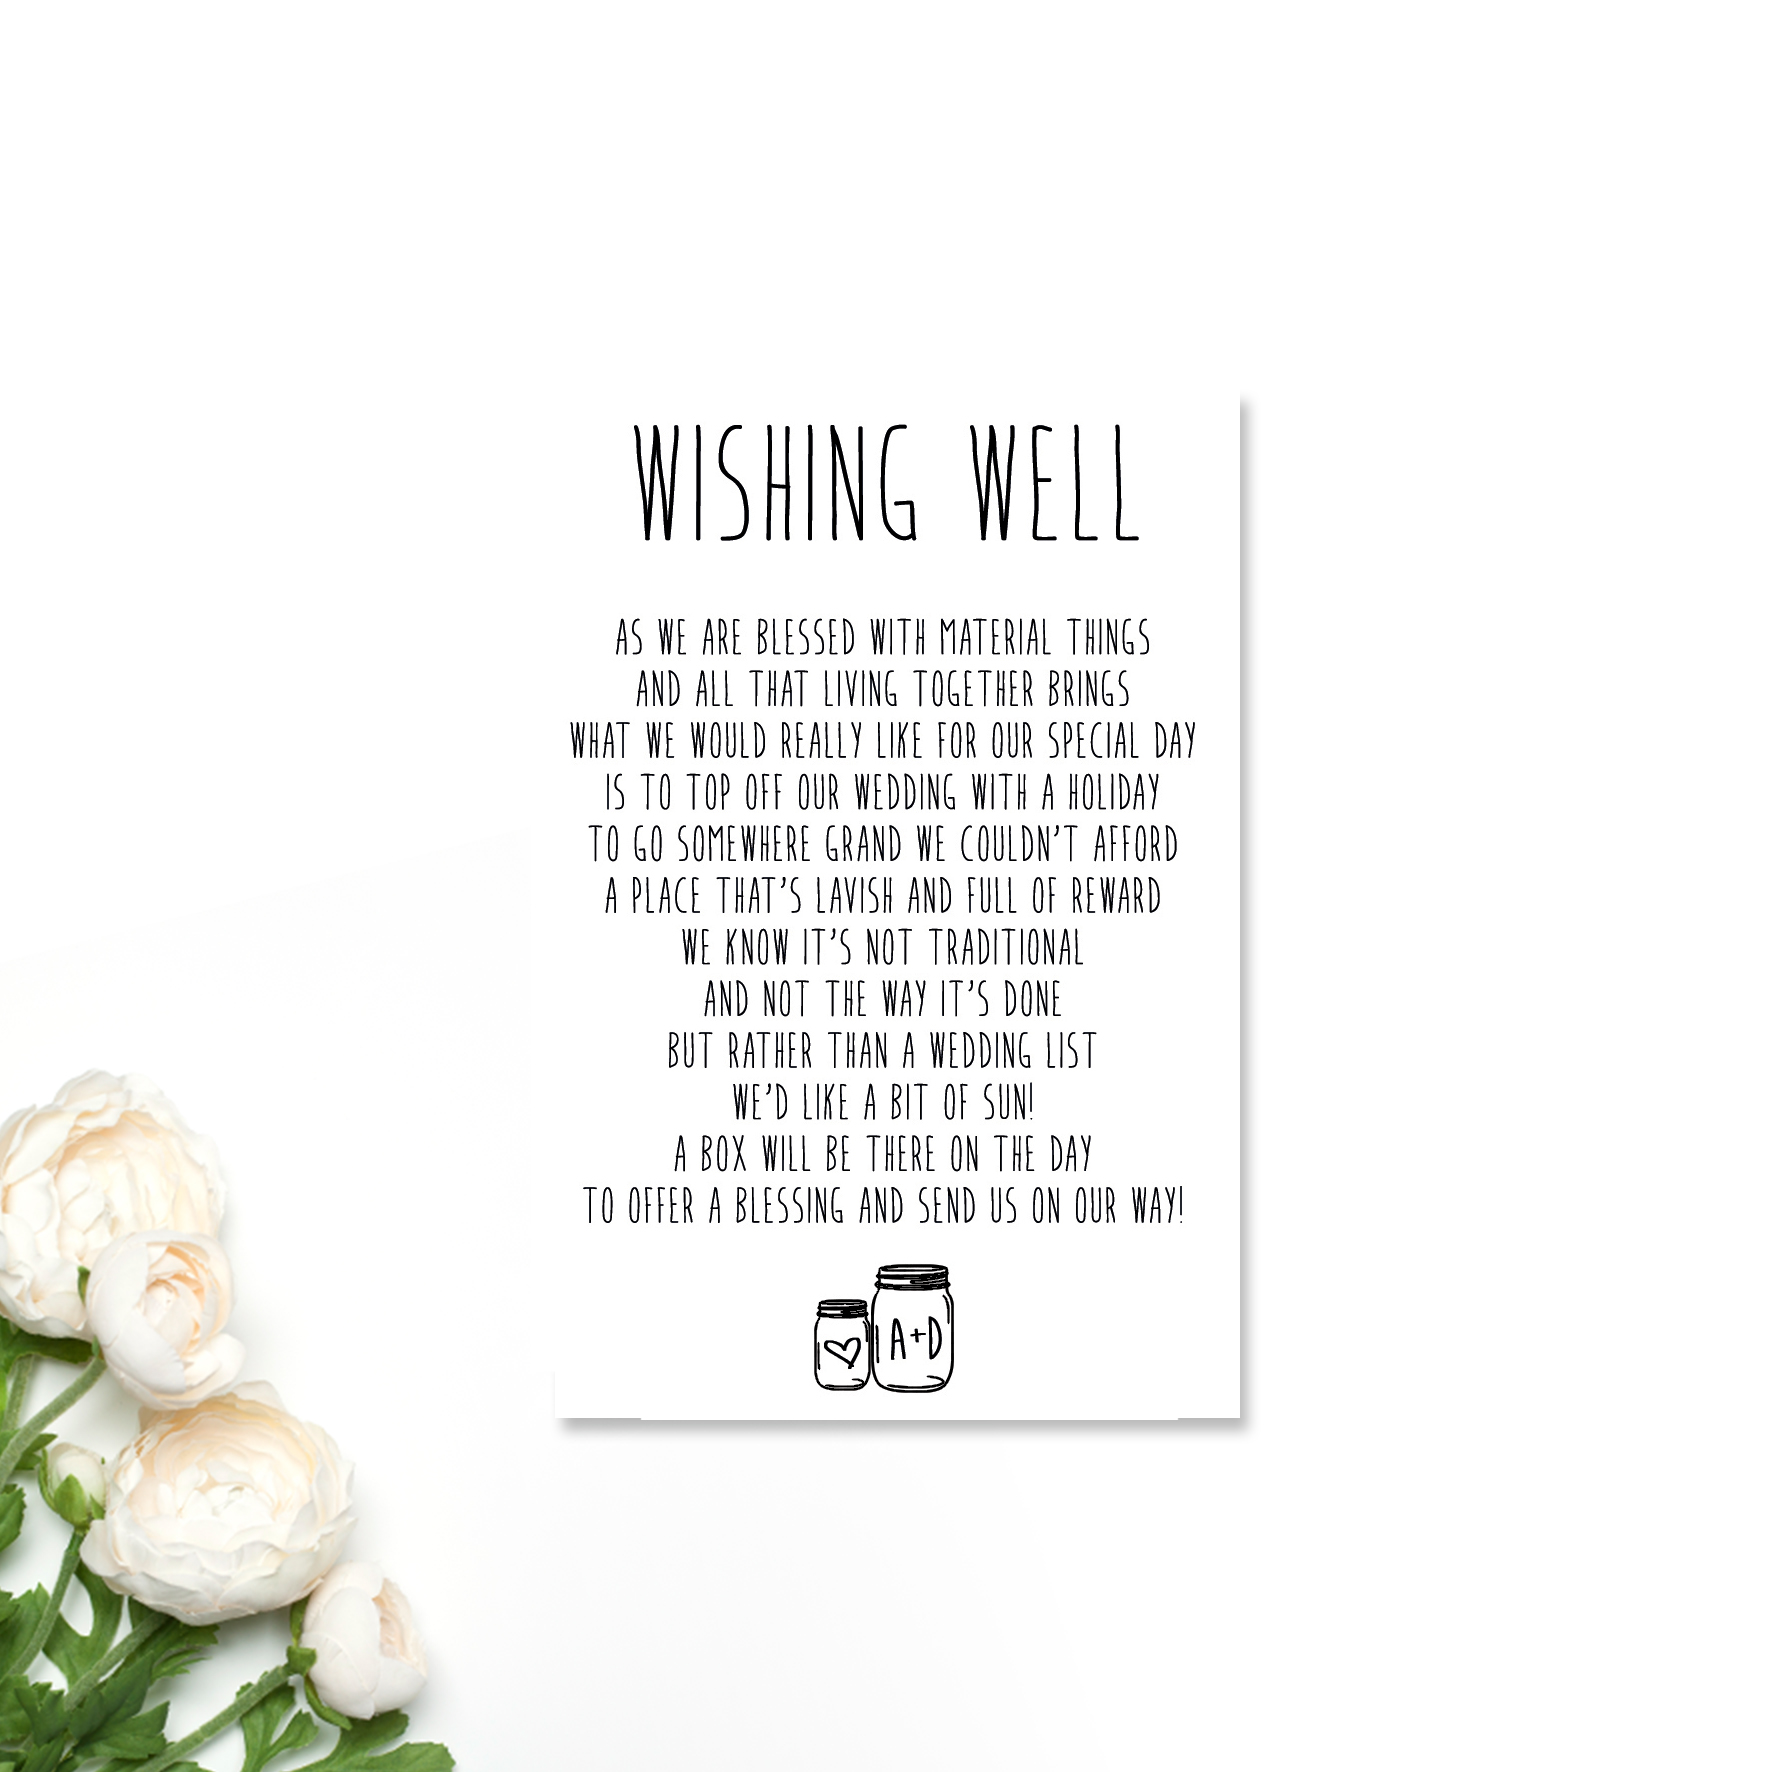 Ashleigh + Darren Wishing Well Card